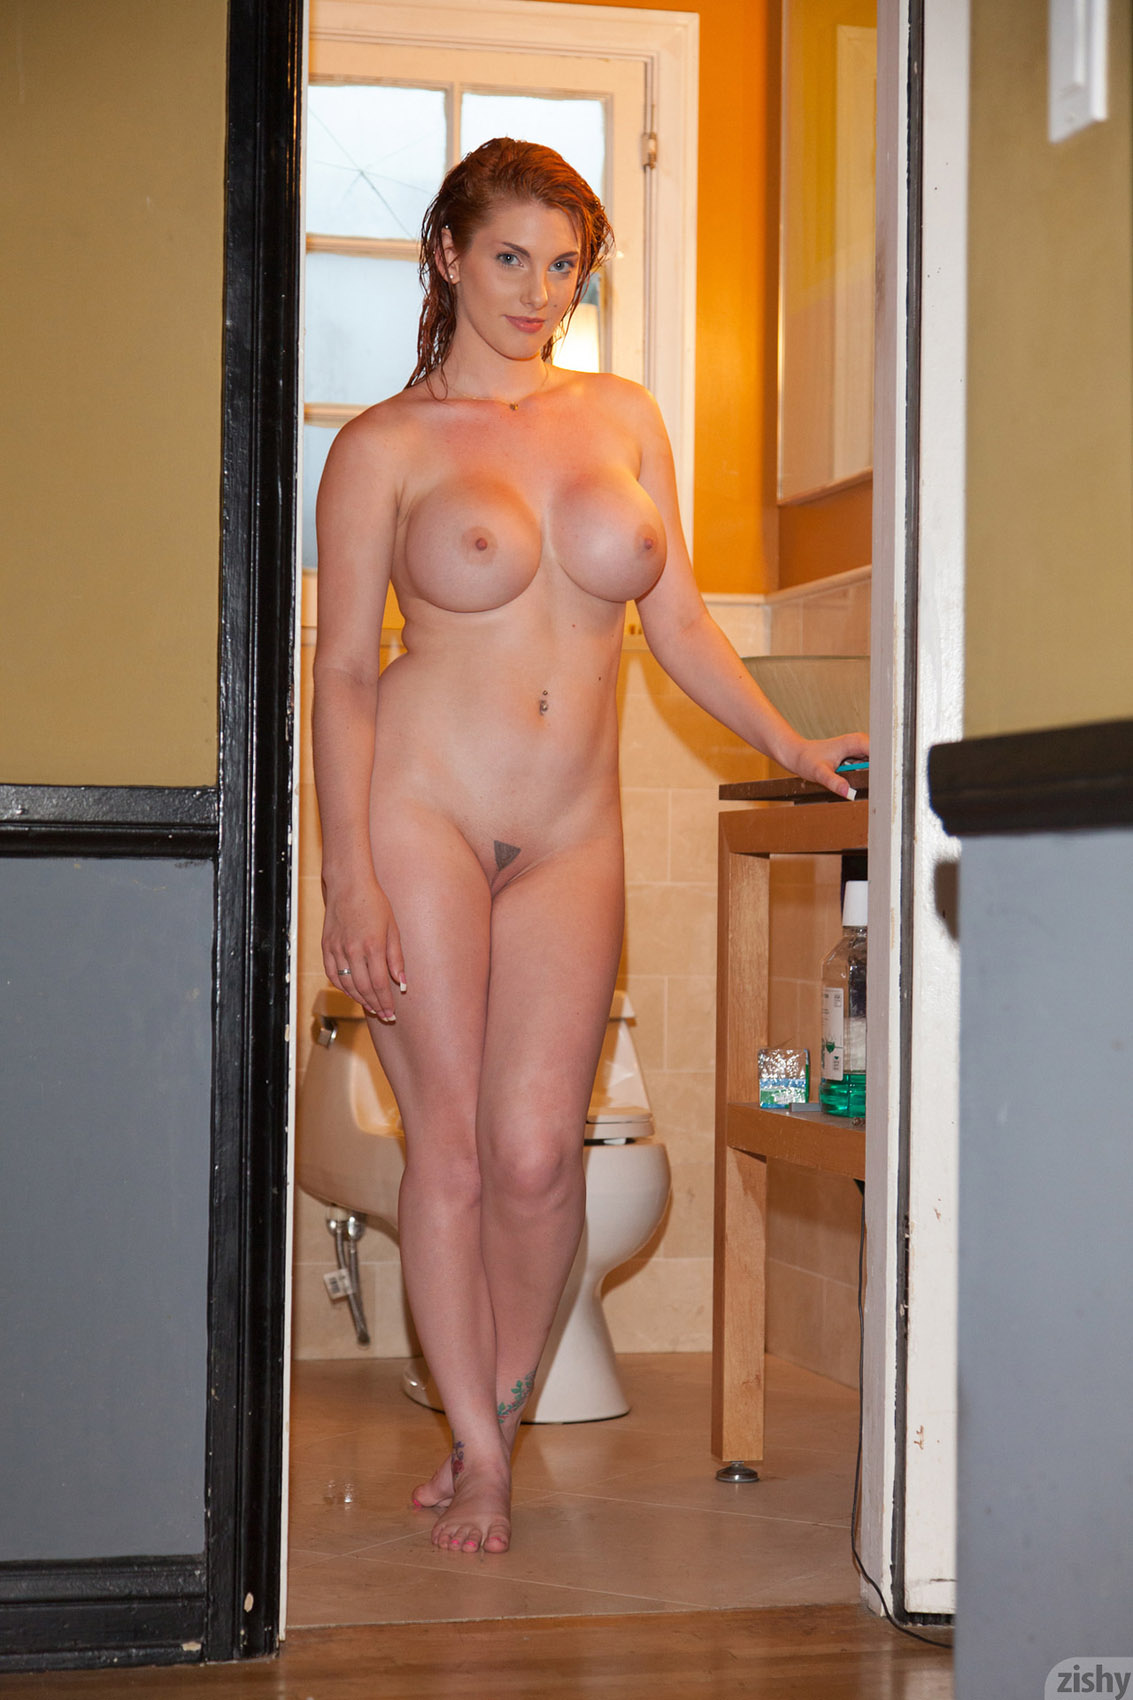 Amusing Nude pregnant redheads in the shower think, that